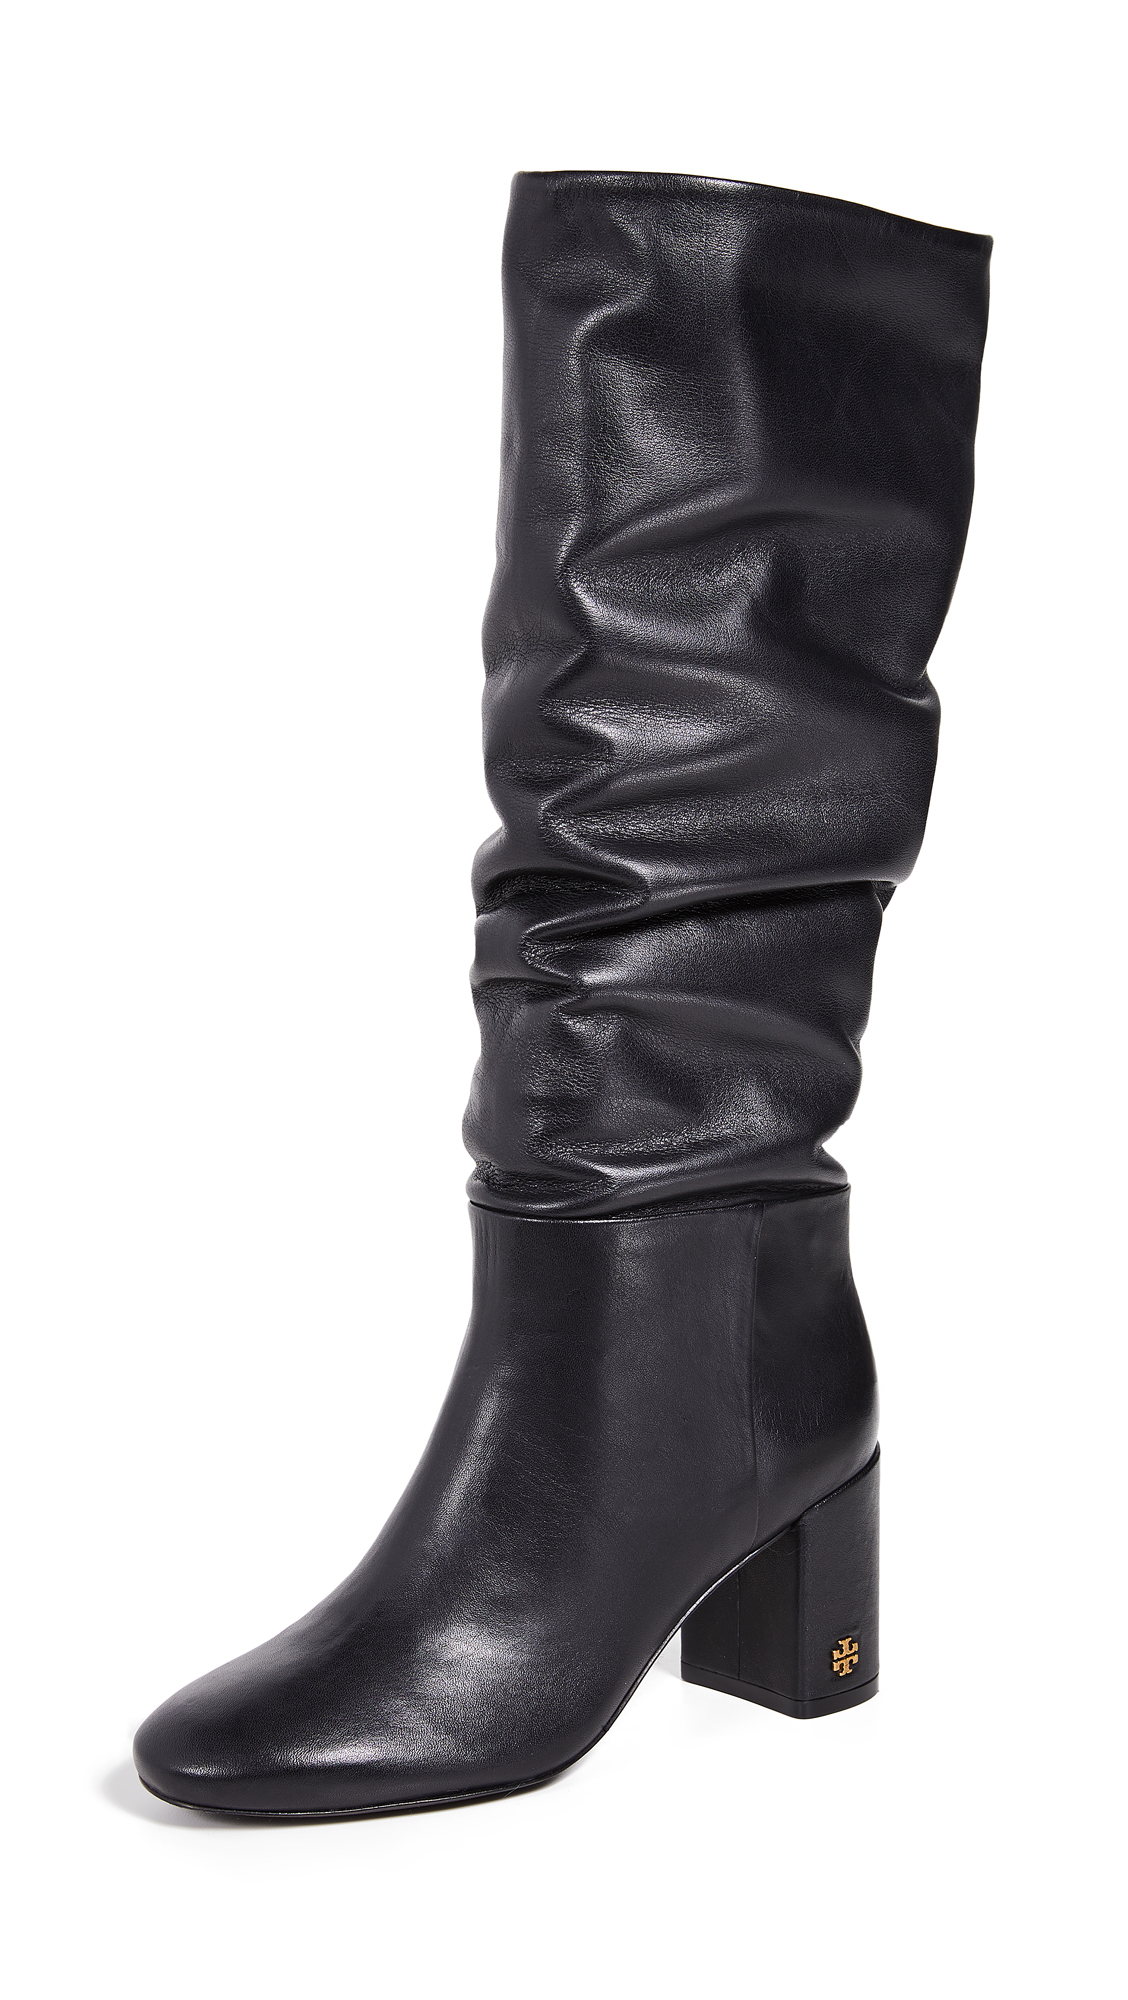 Tory Burch Brooke Slouchy Boots - Perfect Black